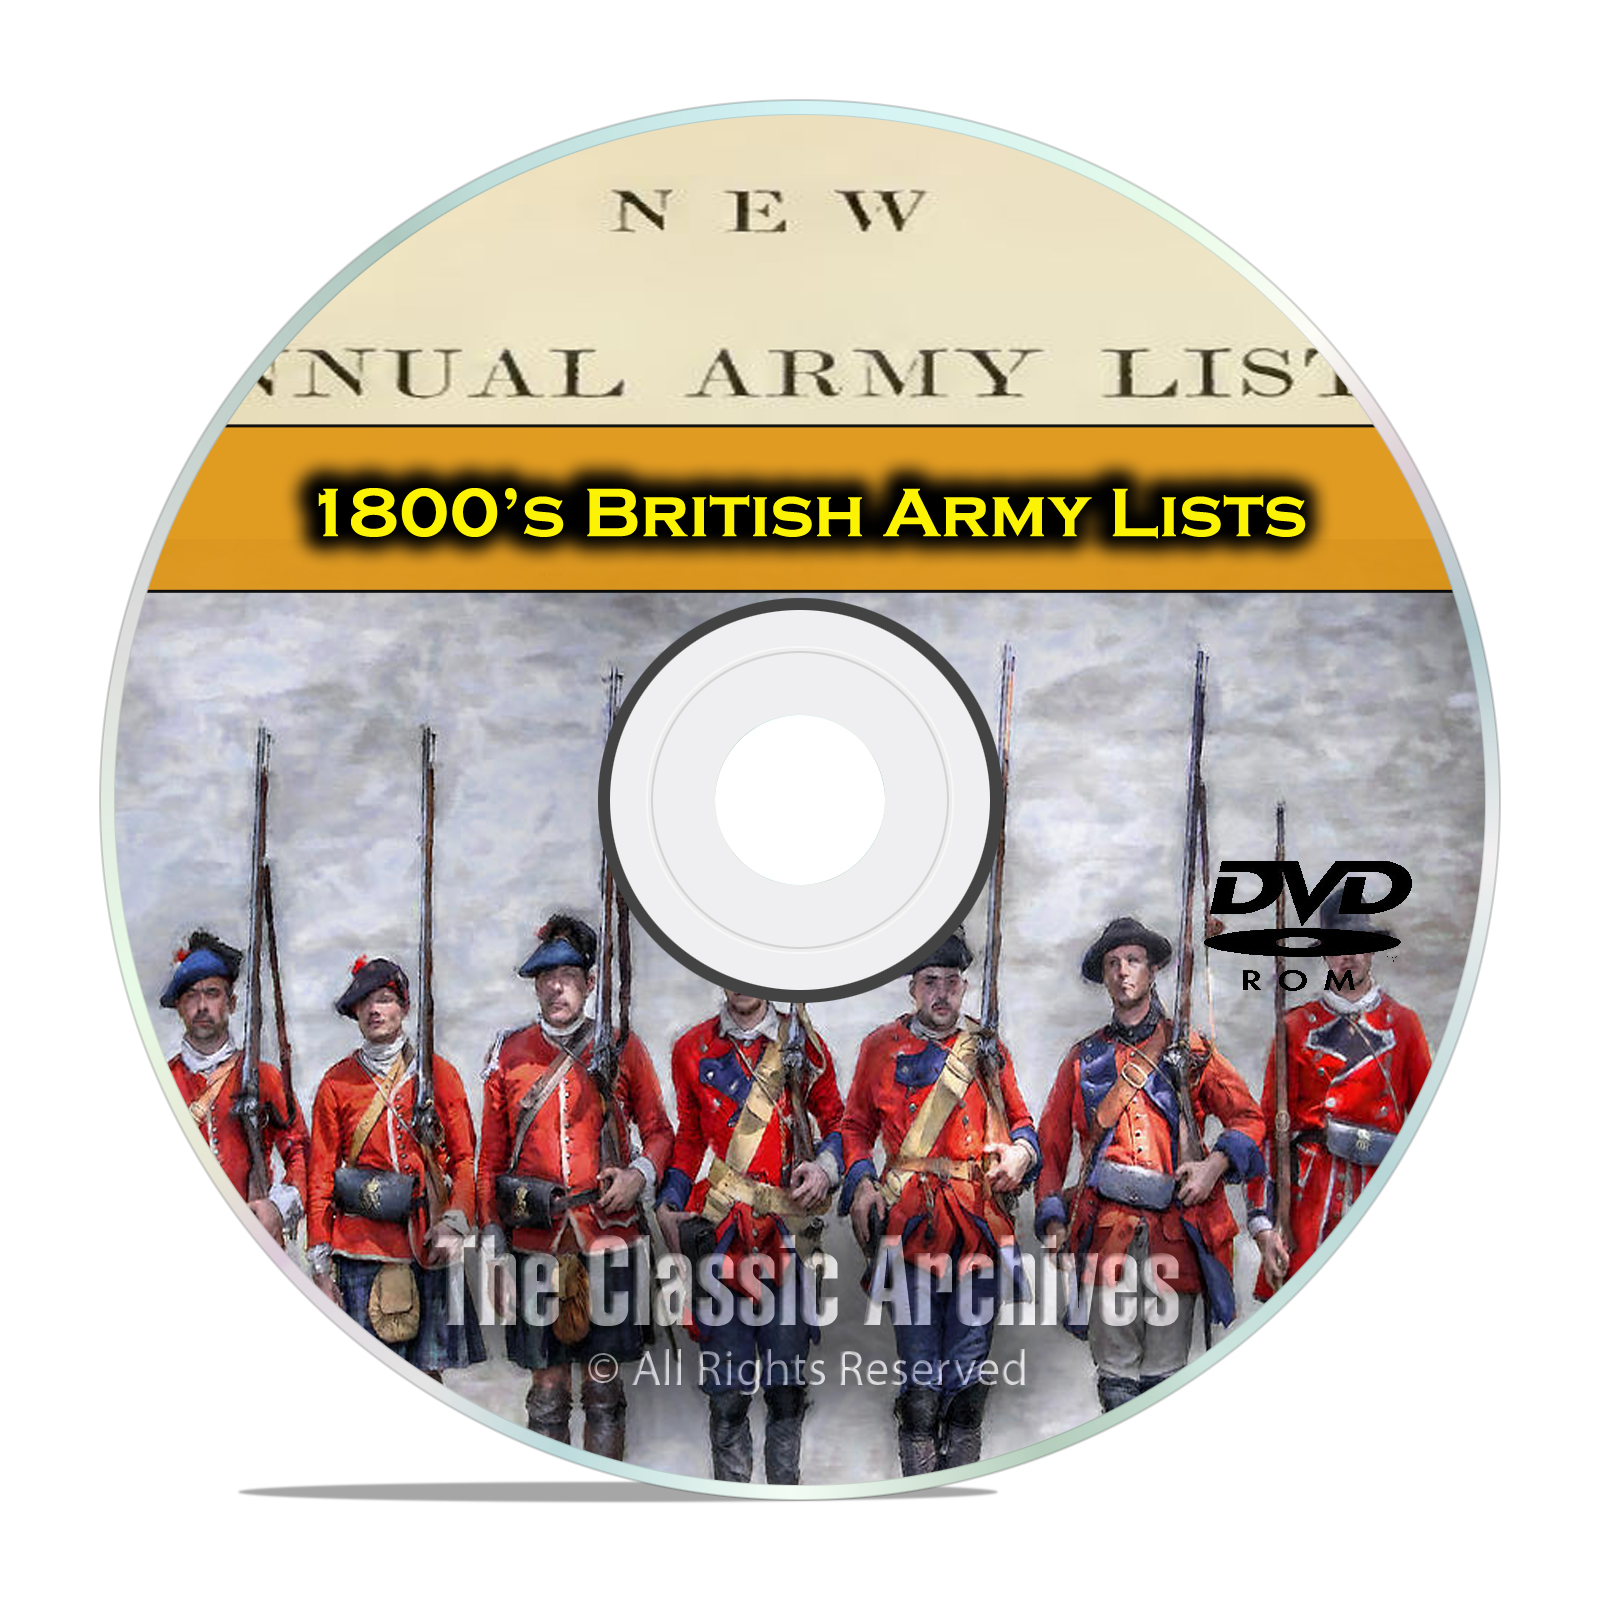 1800's British Army Lists, 1840-1899, 43 Volumes of British History PDF DVD